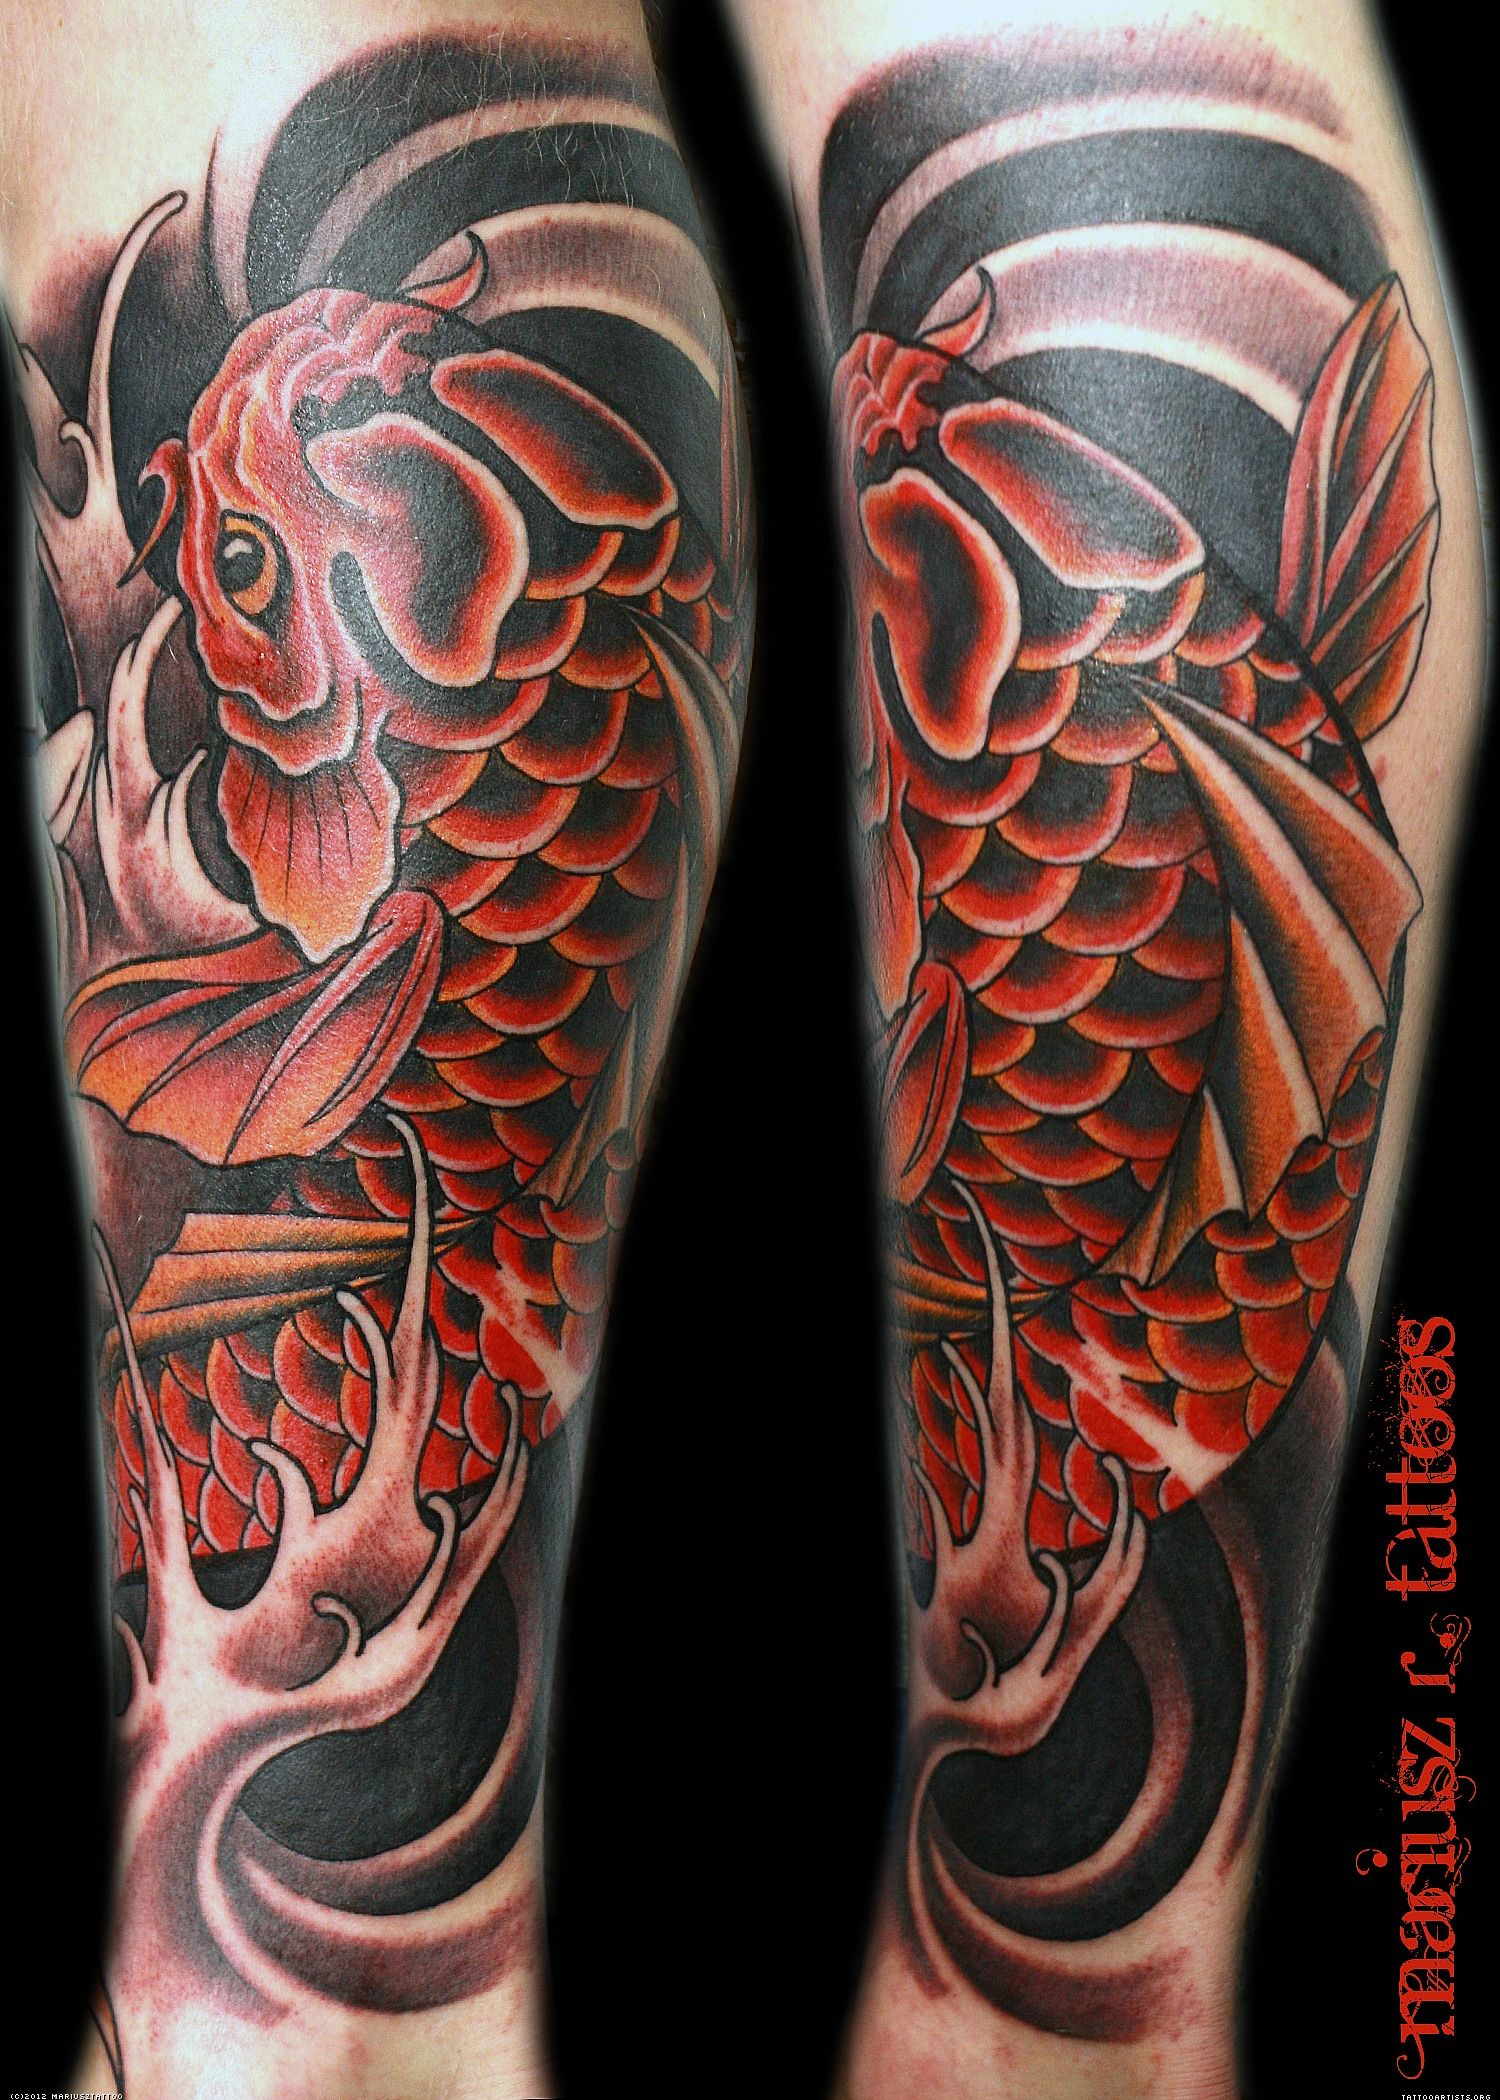 leg tattoos | RED KOI LEG - Tattoo Artists.org | Leg Tattoos ...